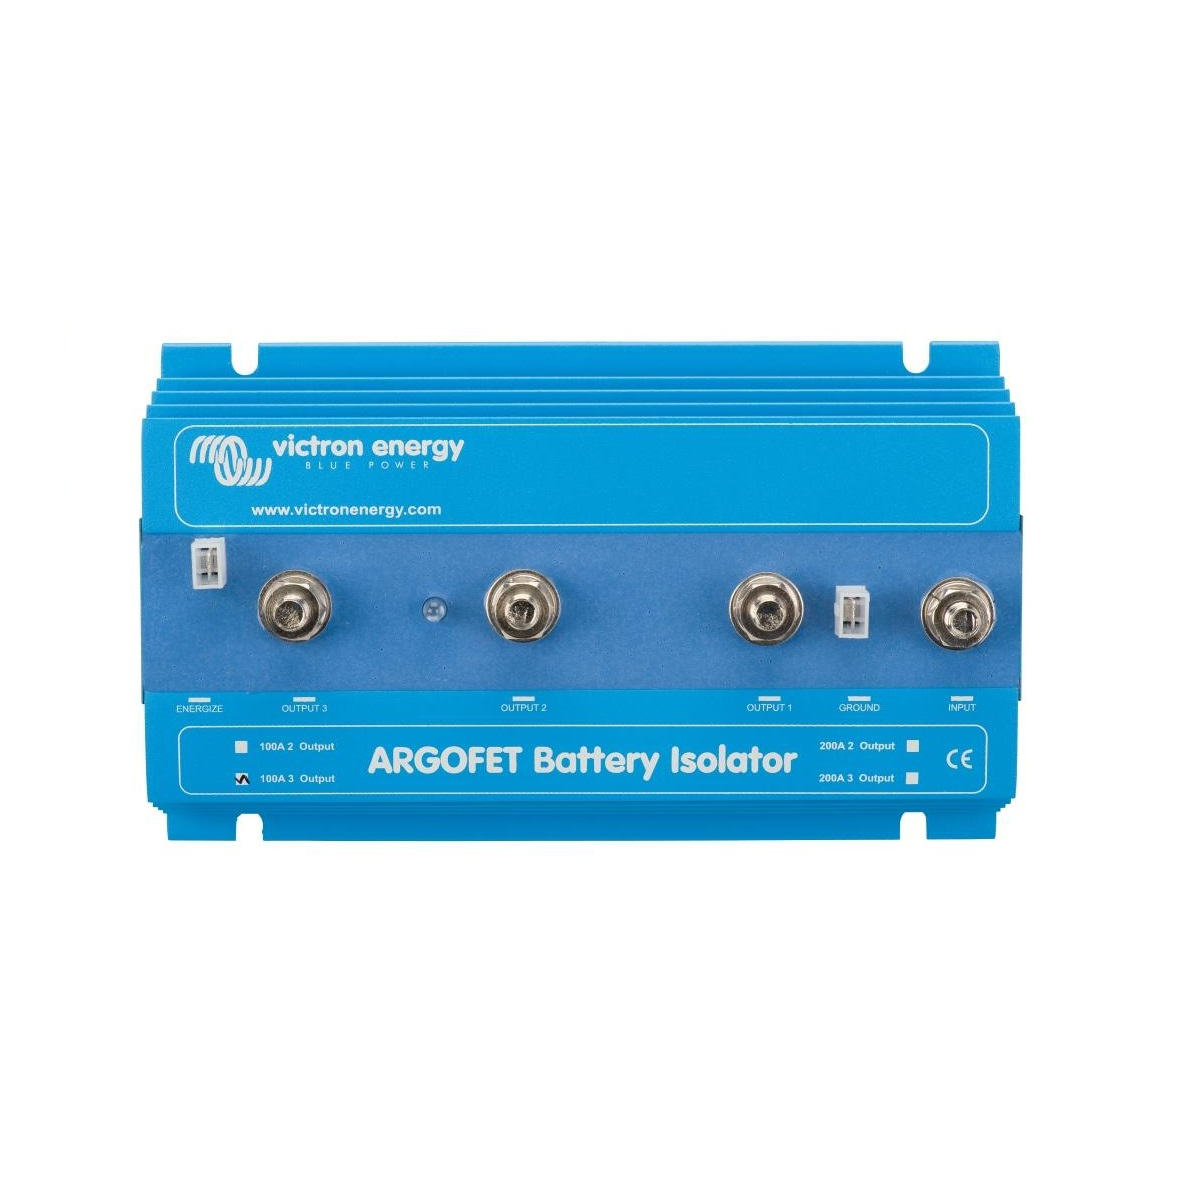 Argo-FET-Batterie-Isolator-Victron-Energy